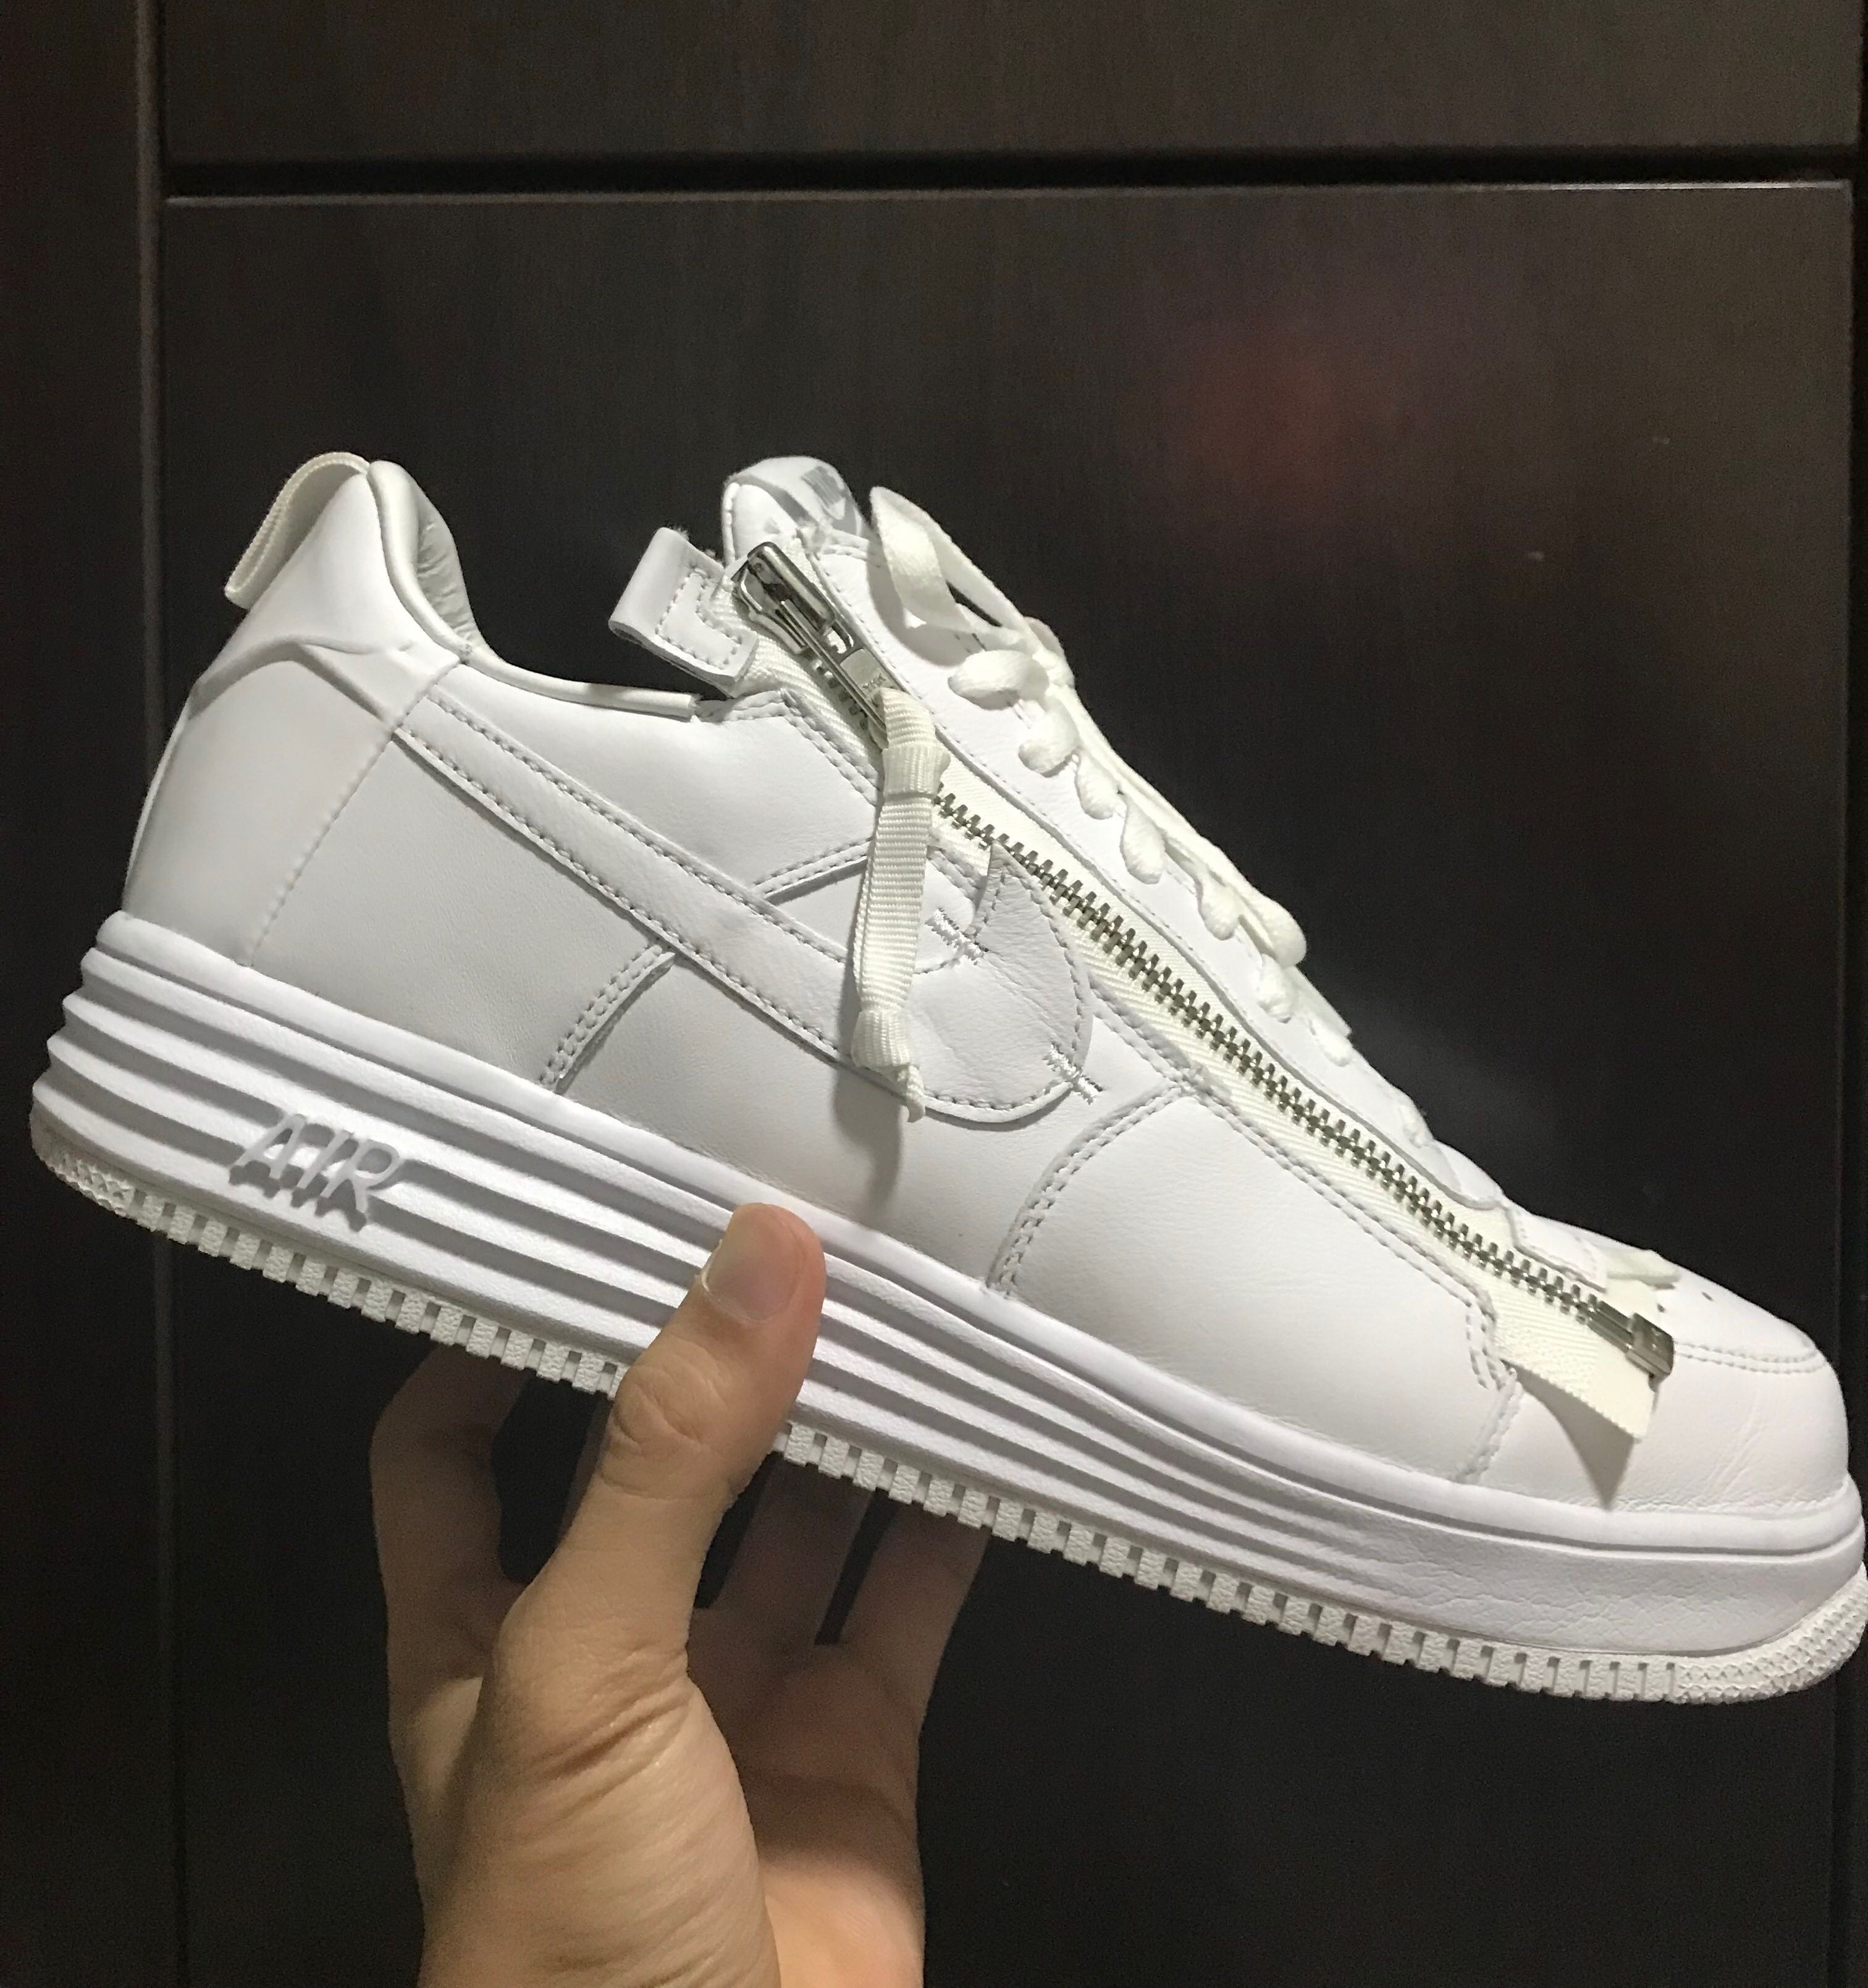 official photos 912b7 dd176 Nike Acronym 17, Mens Fashion, Footwear, Sneakers on Carouse